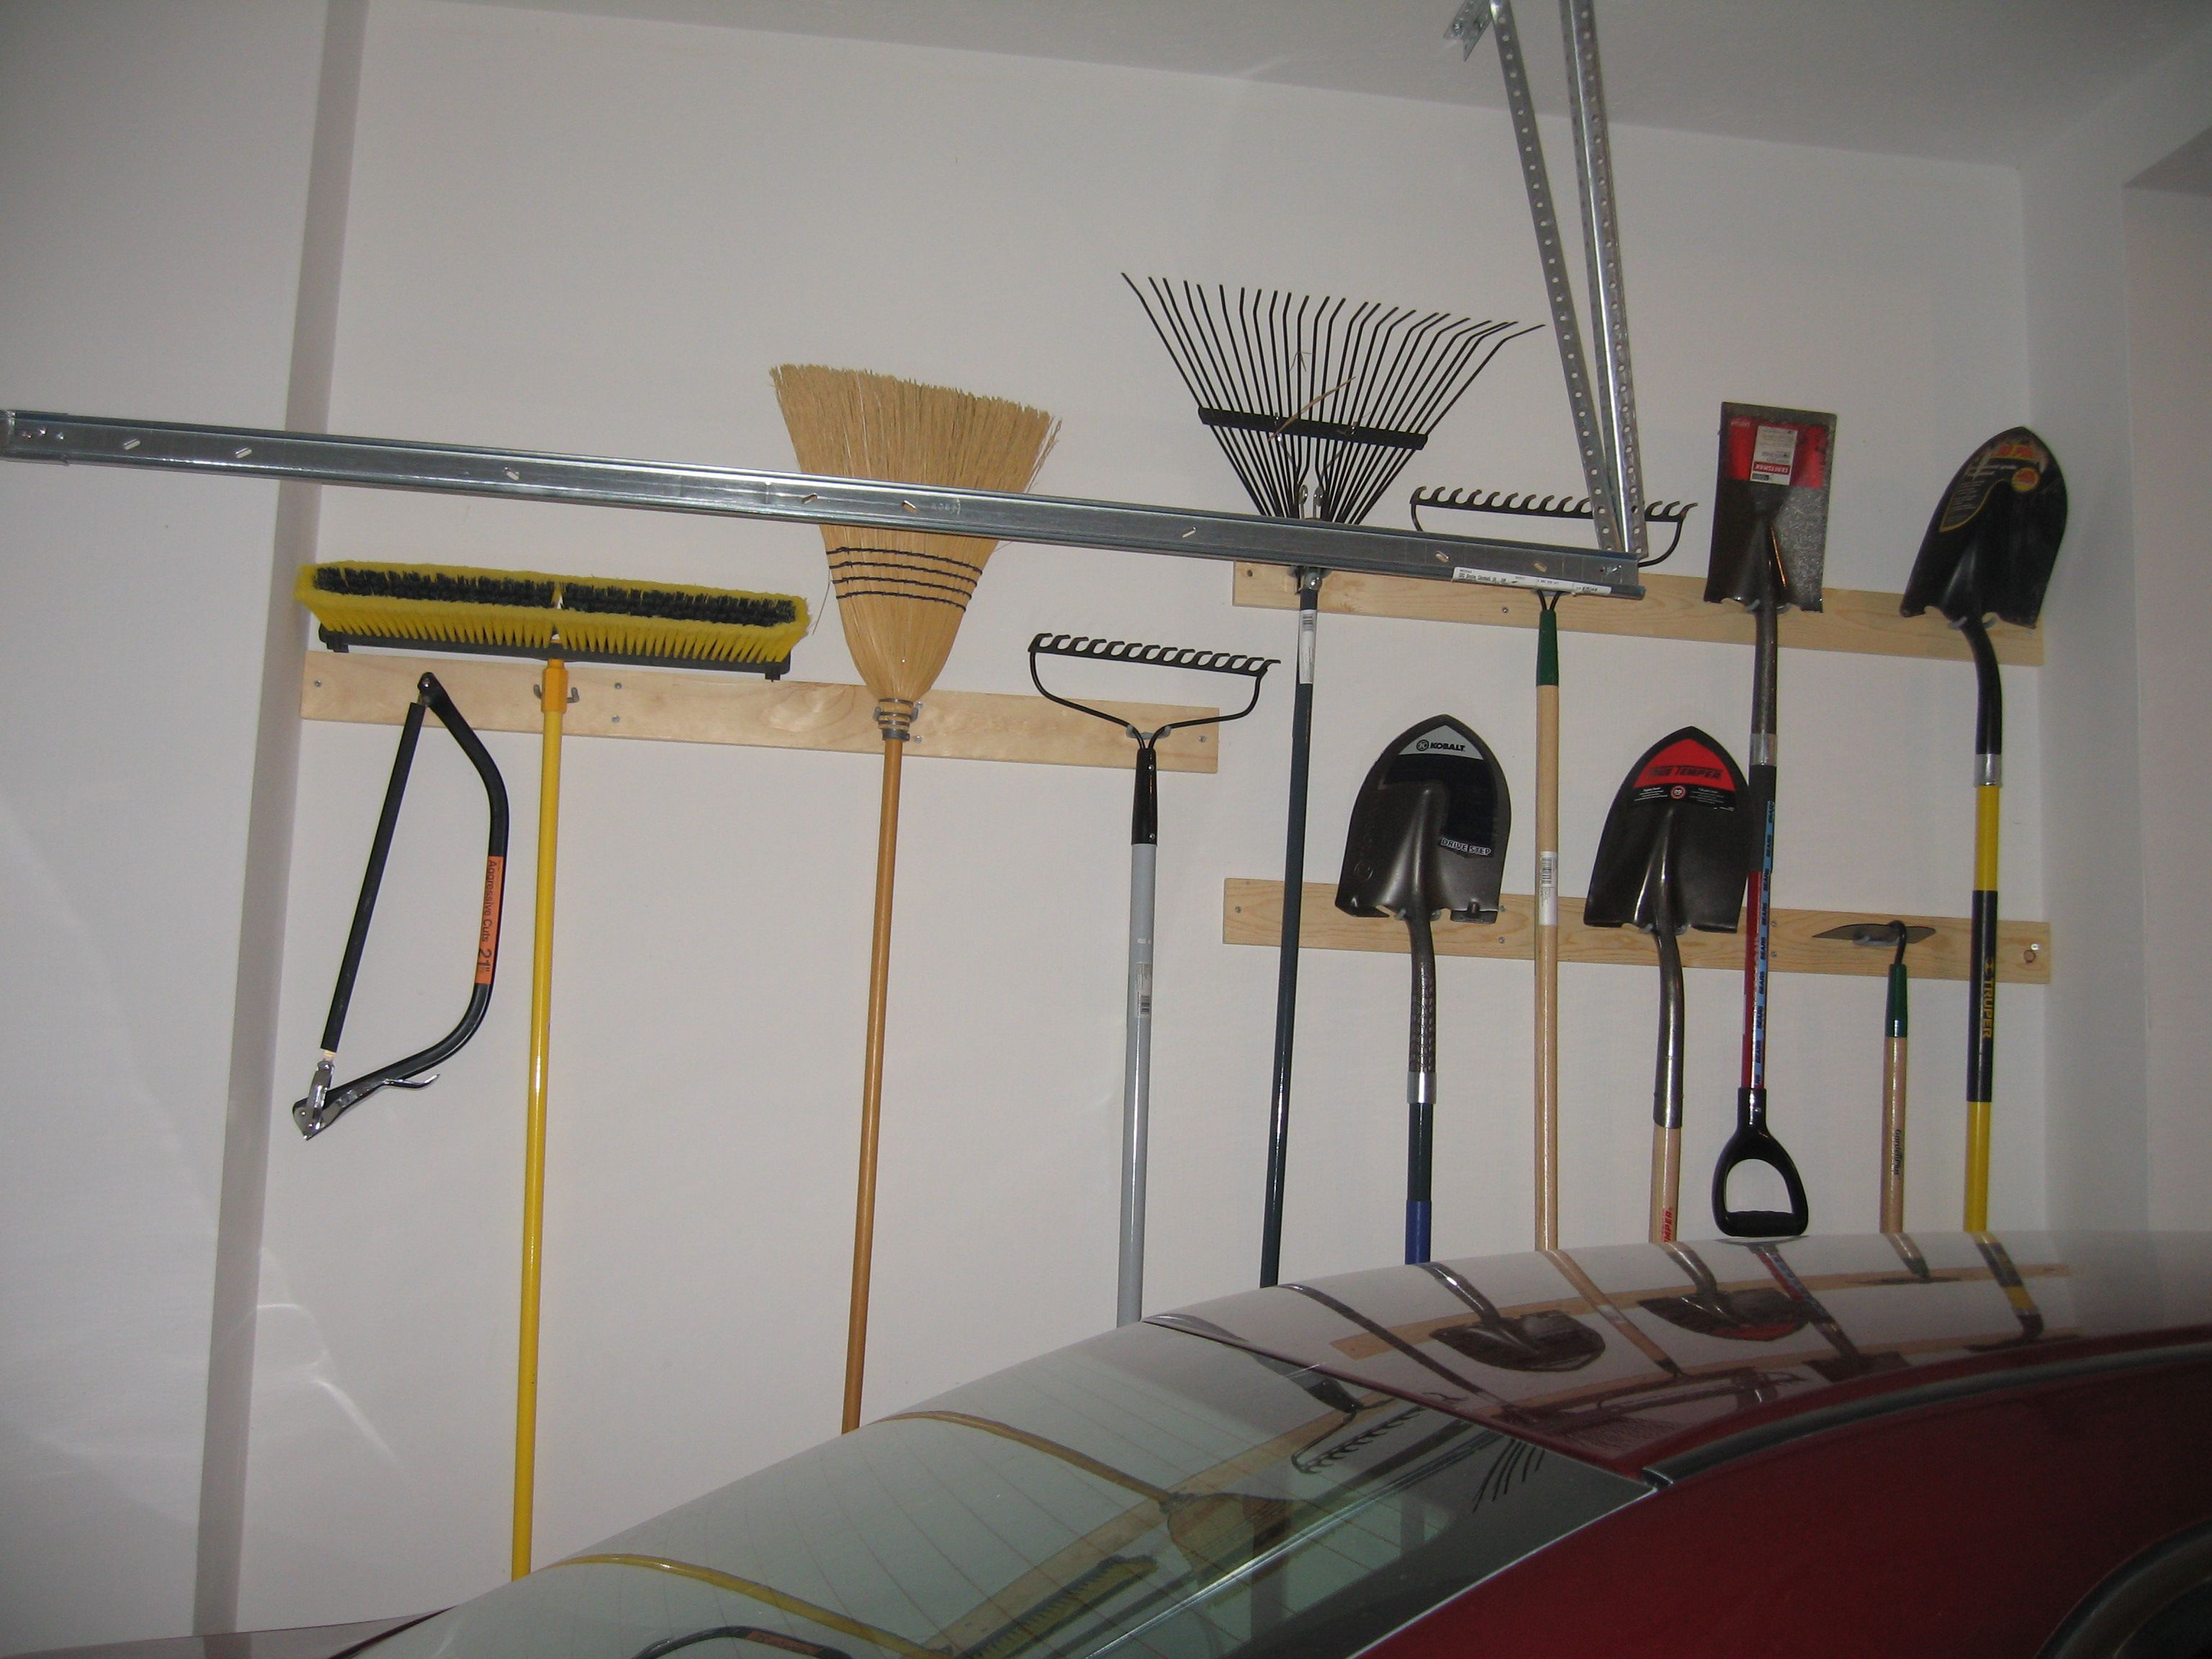 Hand Tool Garage Storage Diy 2X4 And U Shaped Utility Hooks